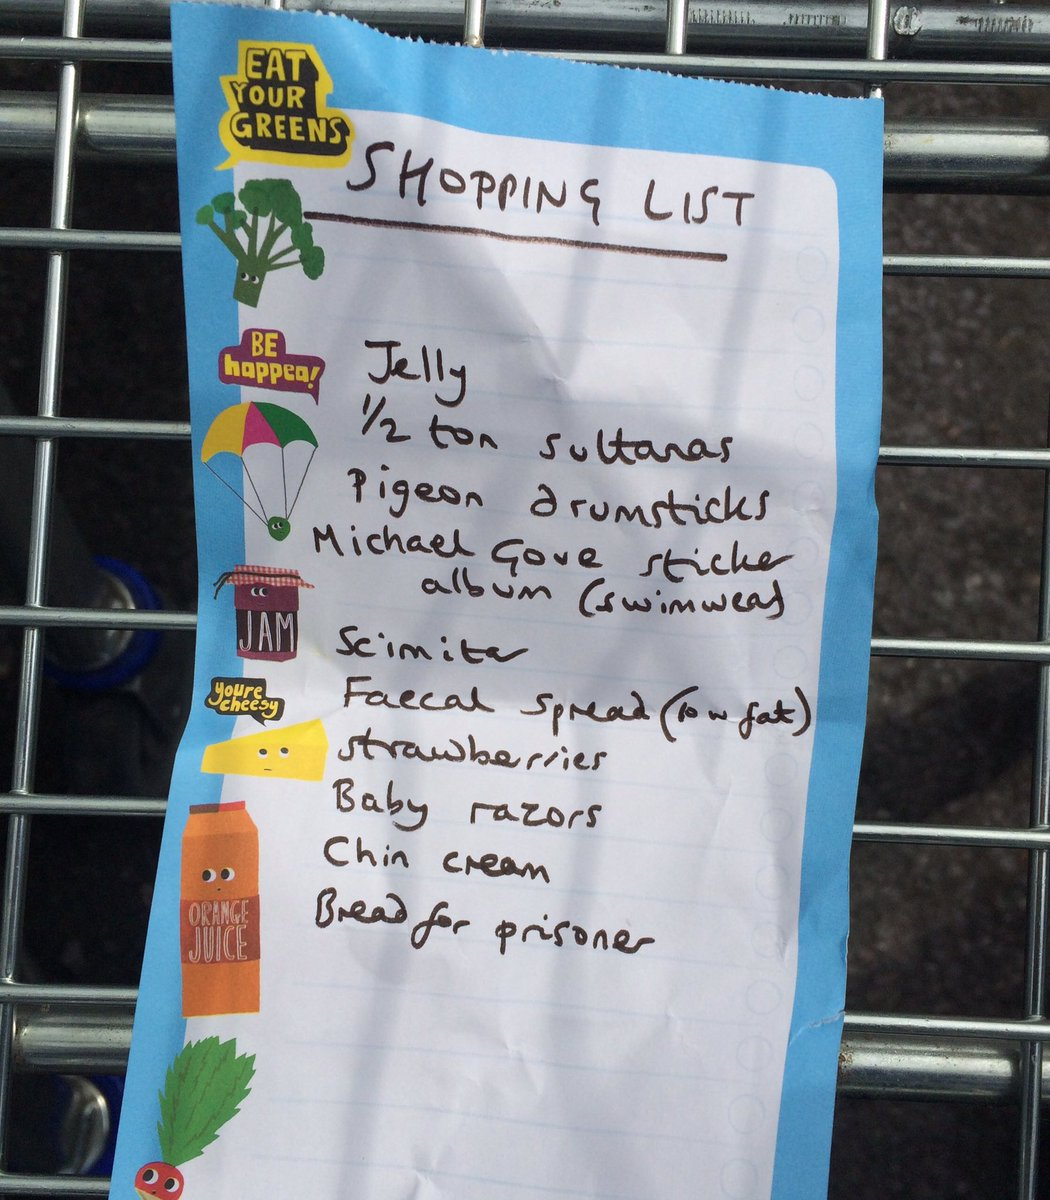 Today's shopping list left in a Tesco trolley for a happy shopper: https://t.co/3Qsg1X47XS